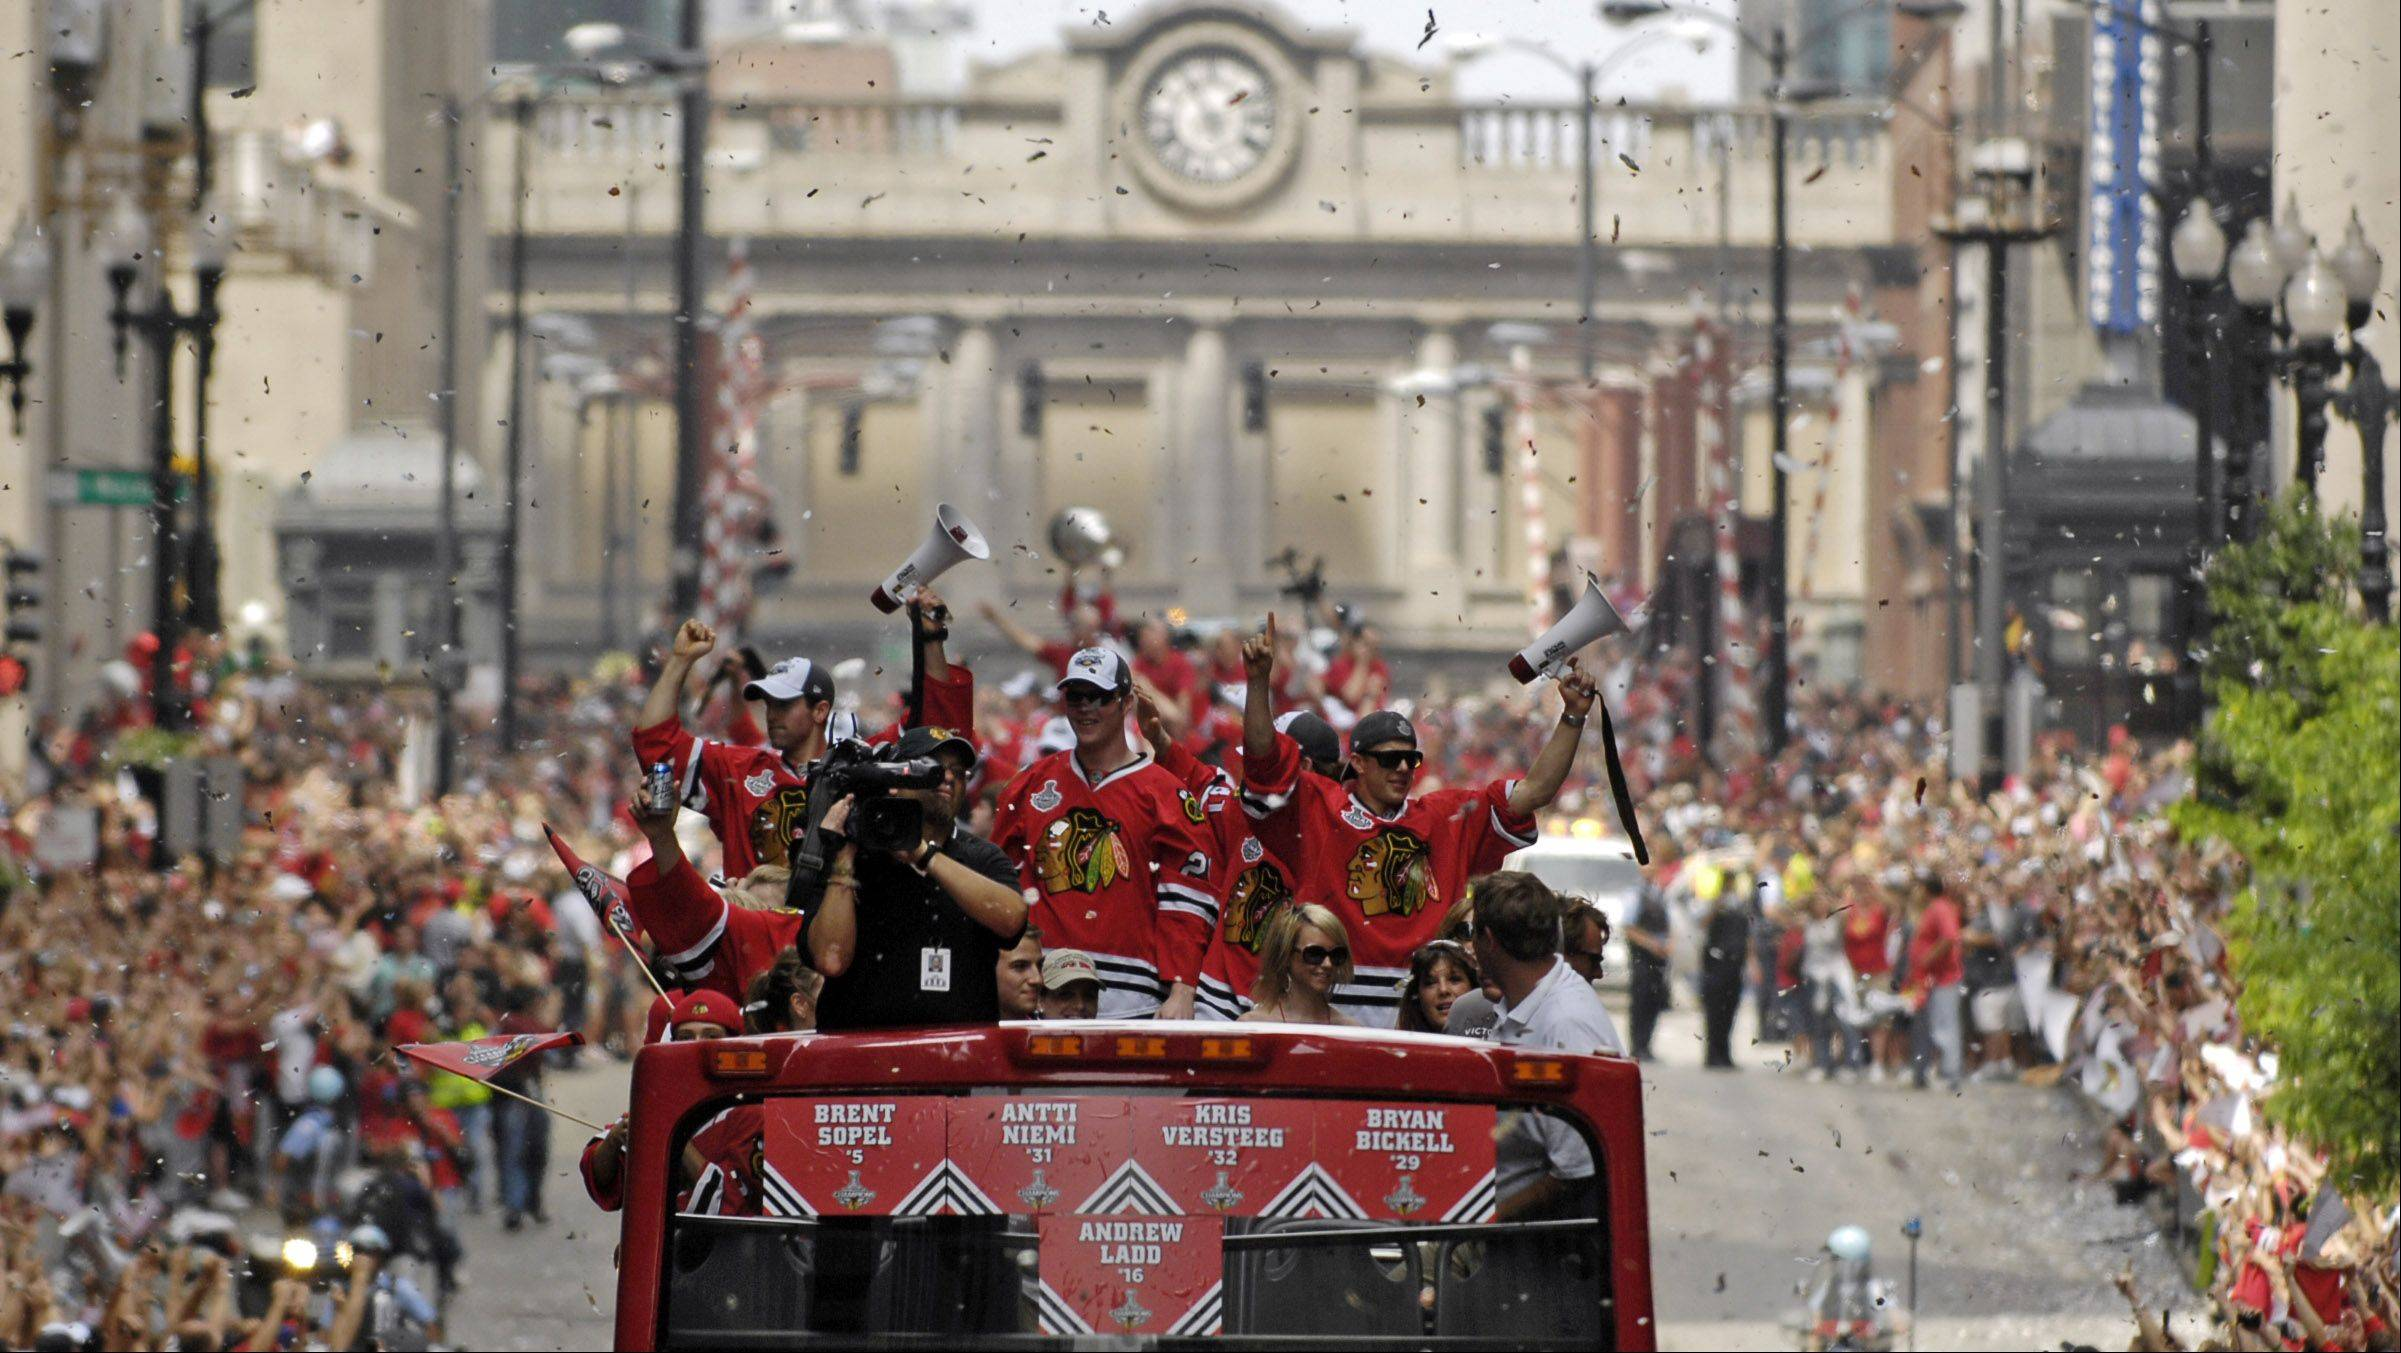 After winning the 2010 Stanley Cup, the Hawks paraded down Washington Street en route to a rally in Chicago.